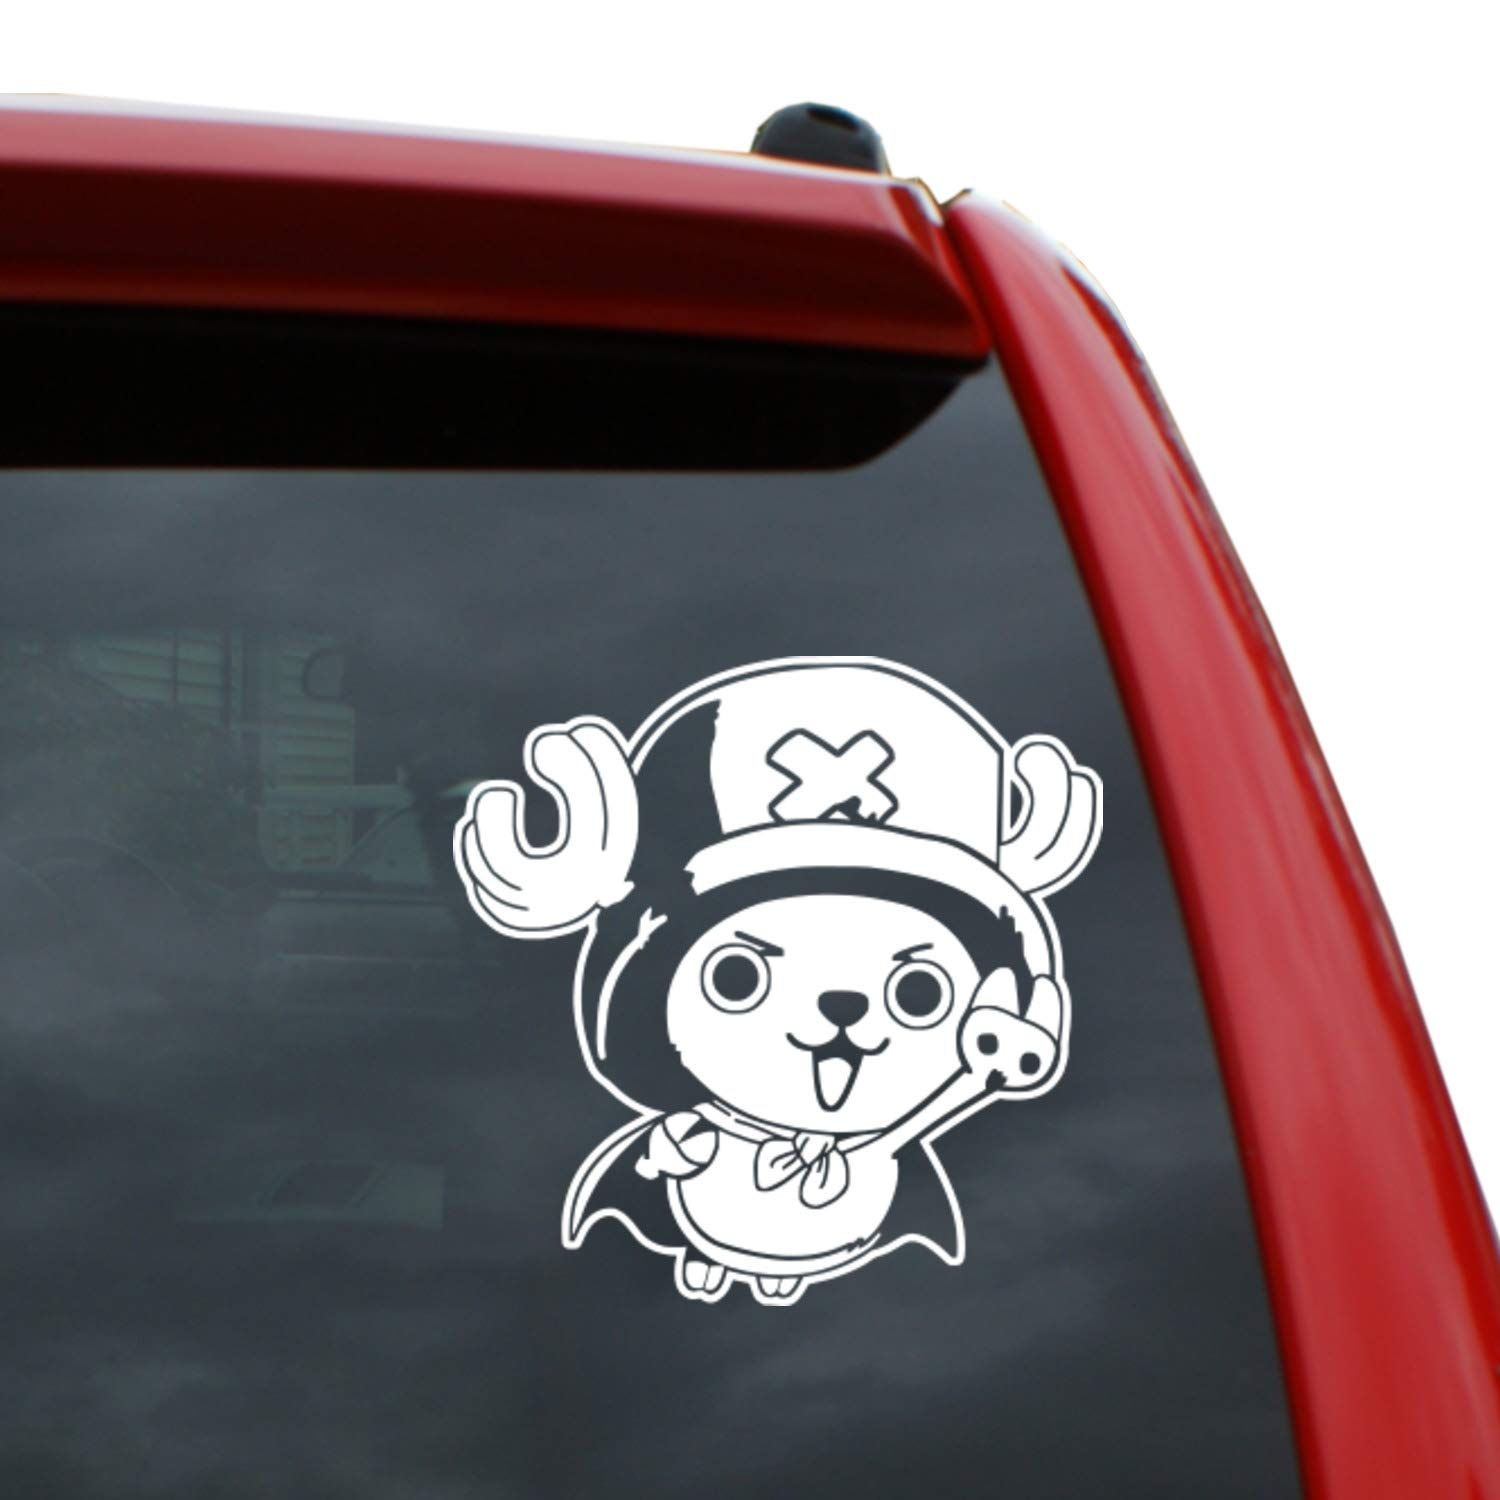 Amazon com one piece tony chopper 5 tall vinyl decal window sticker for cars trucks windows walls laptops and more automotive